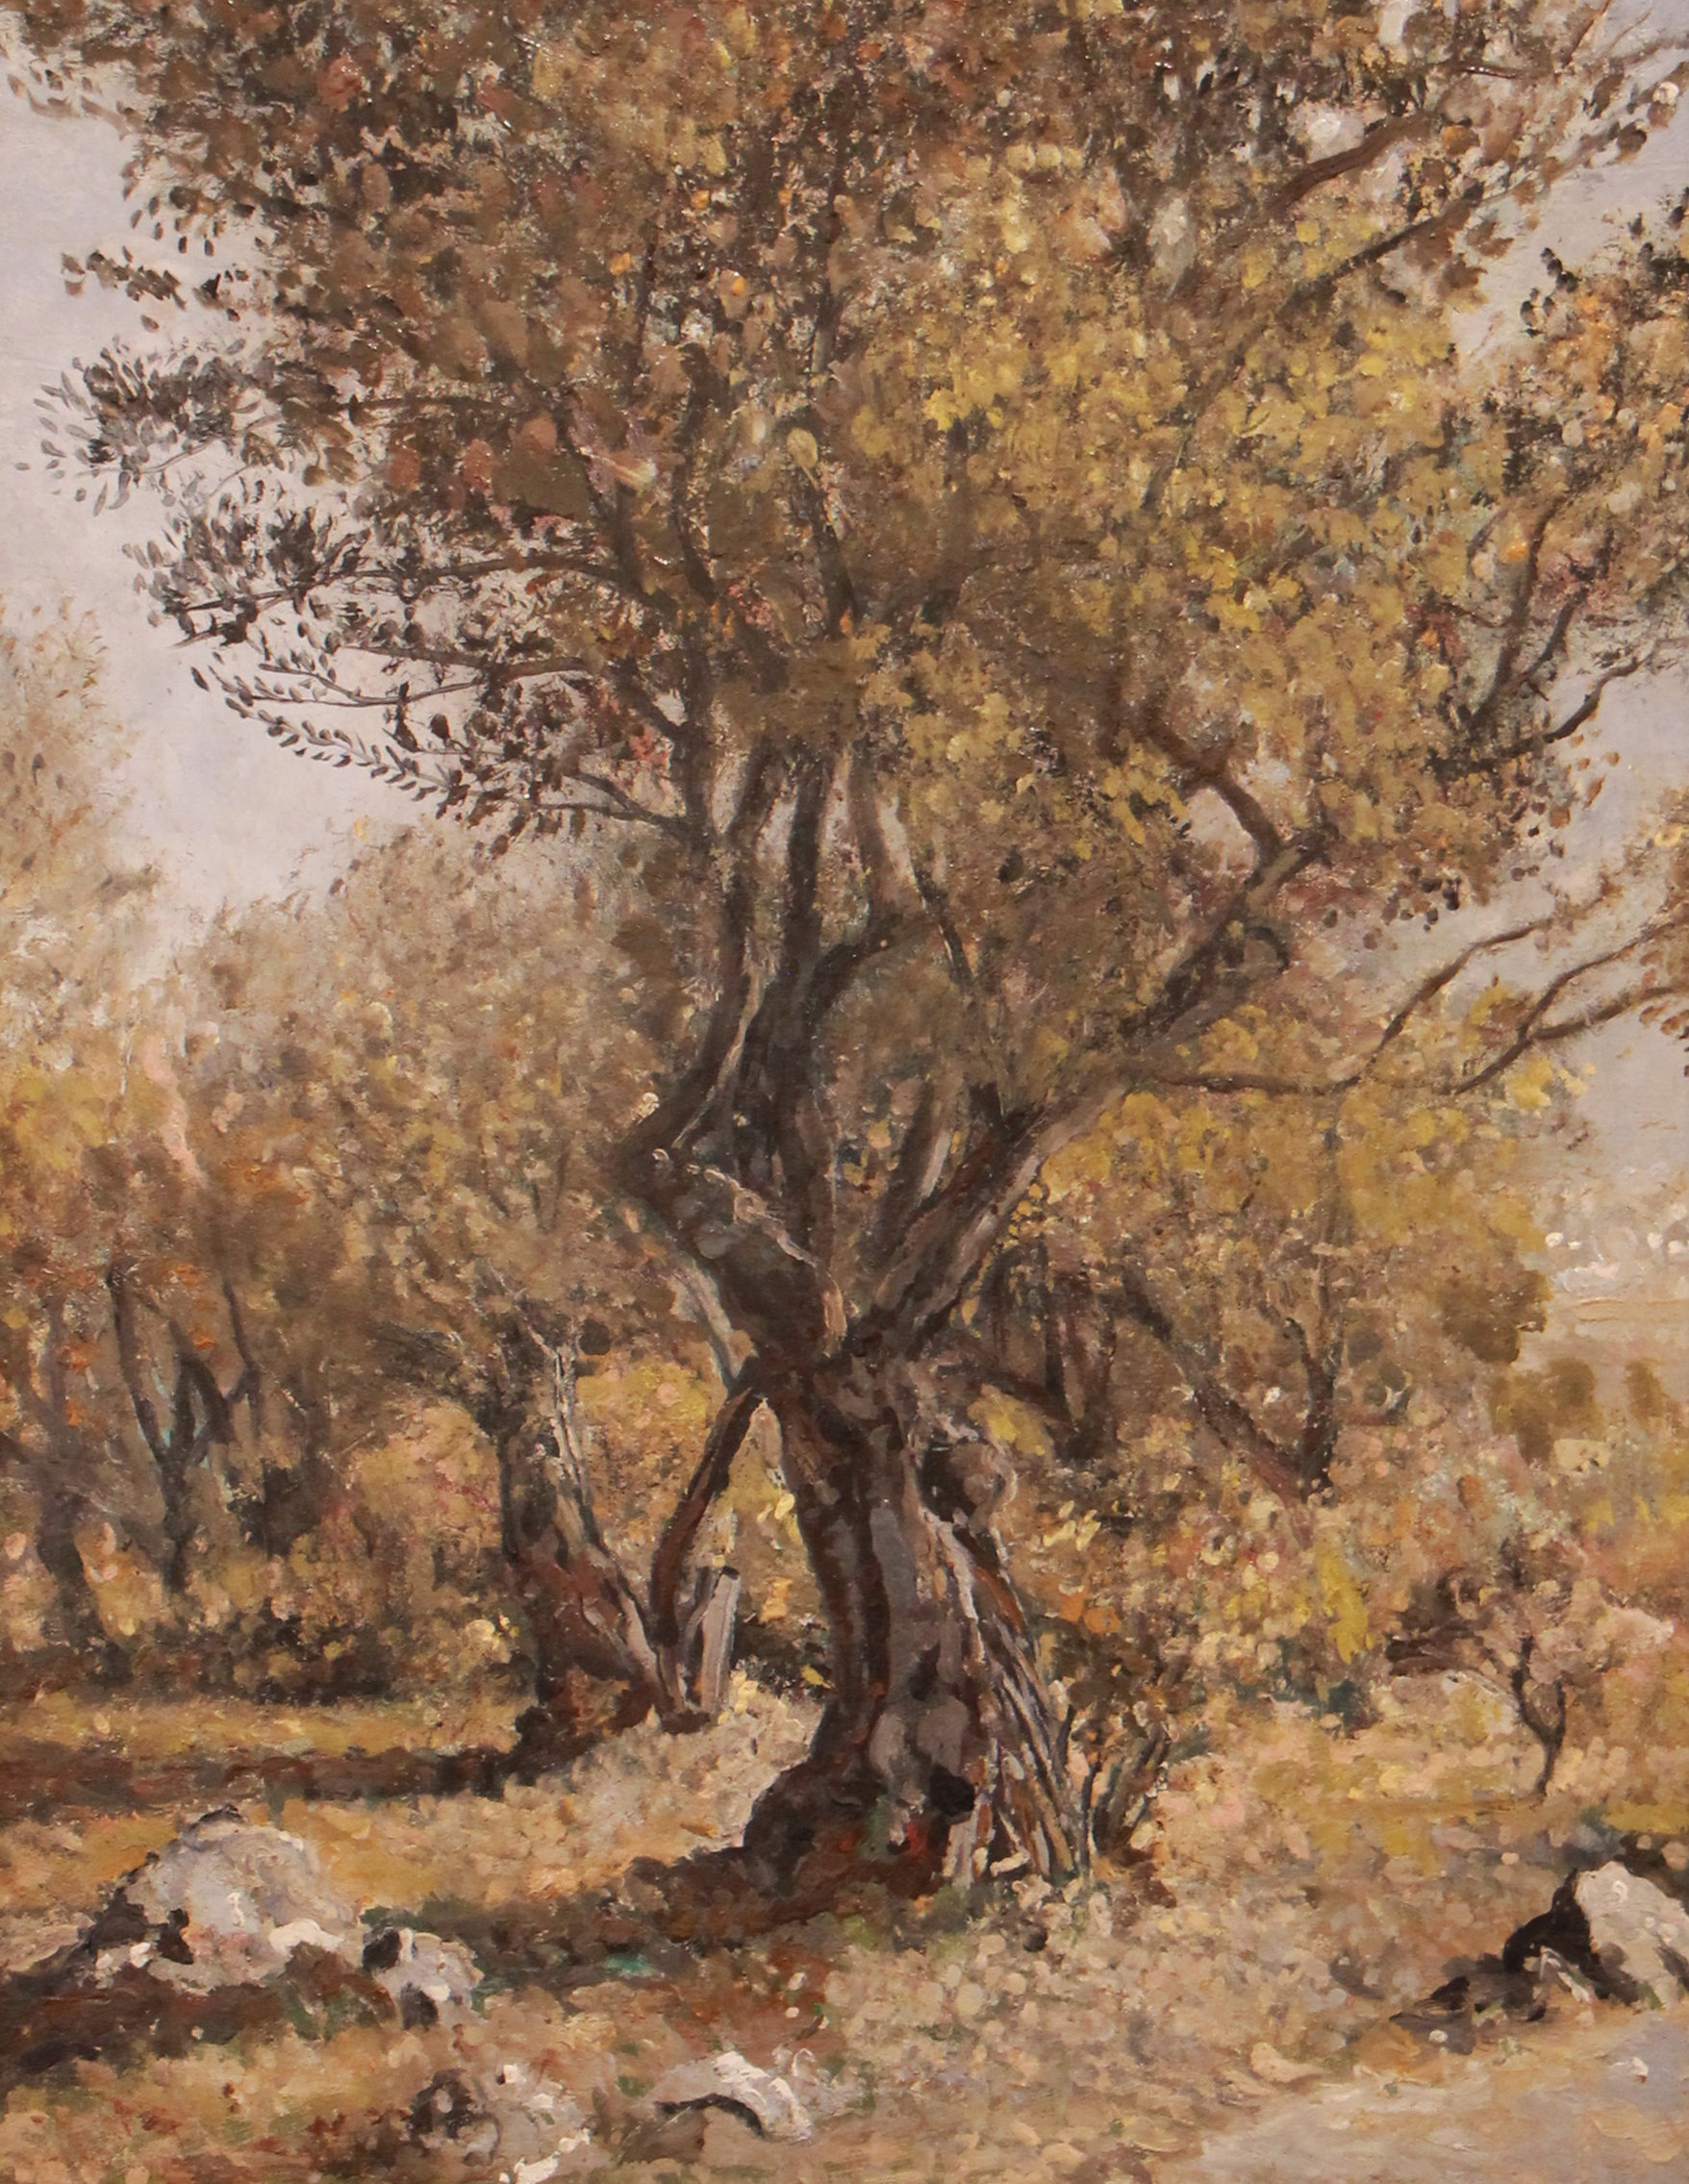 The Olive Tree  60 x 52 cm, oil on canvas. #A1 - 2012